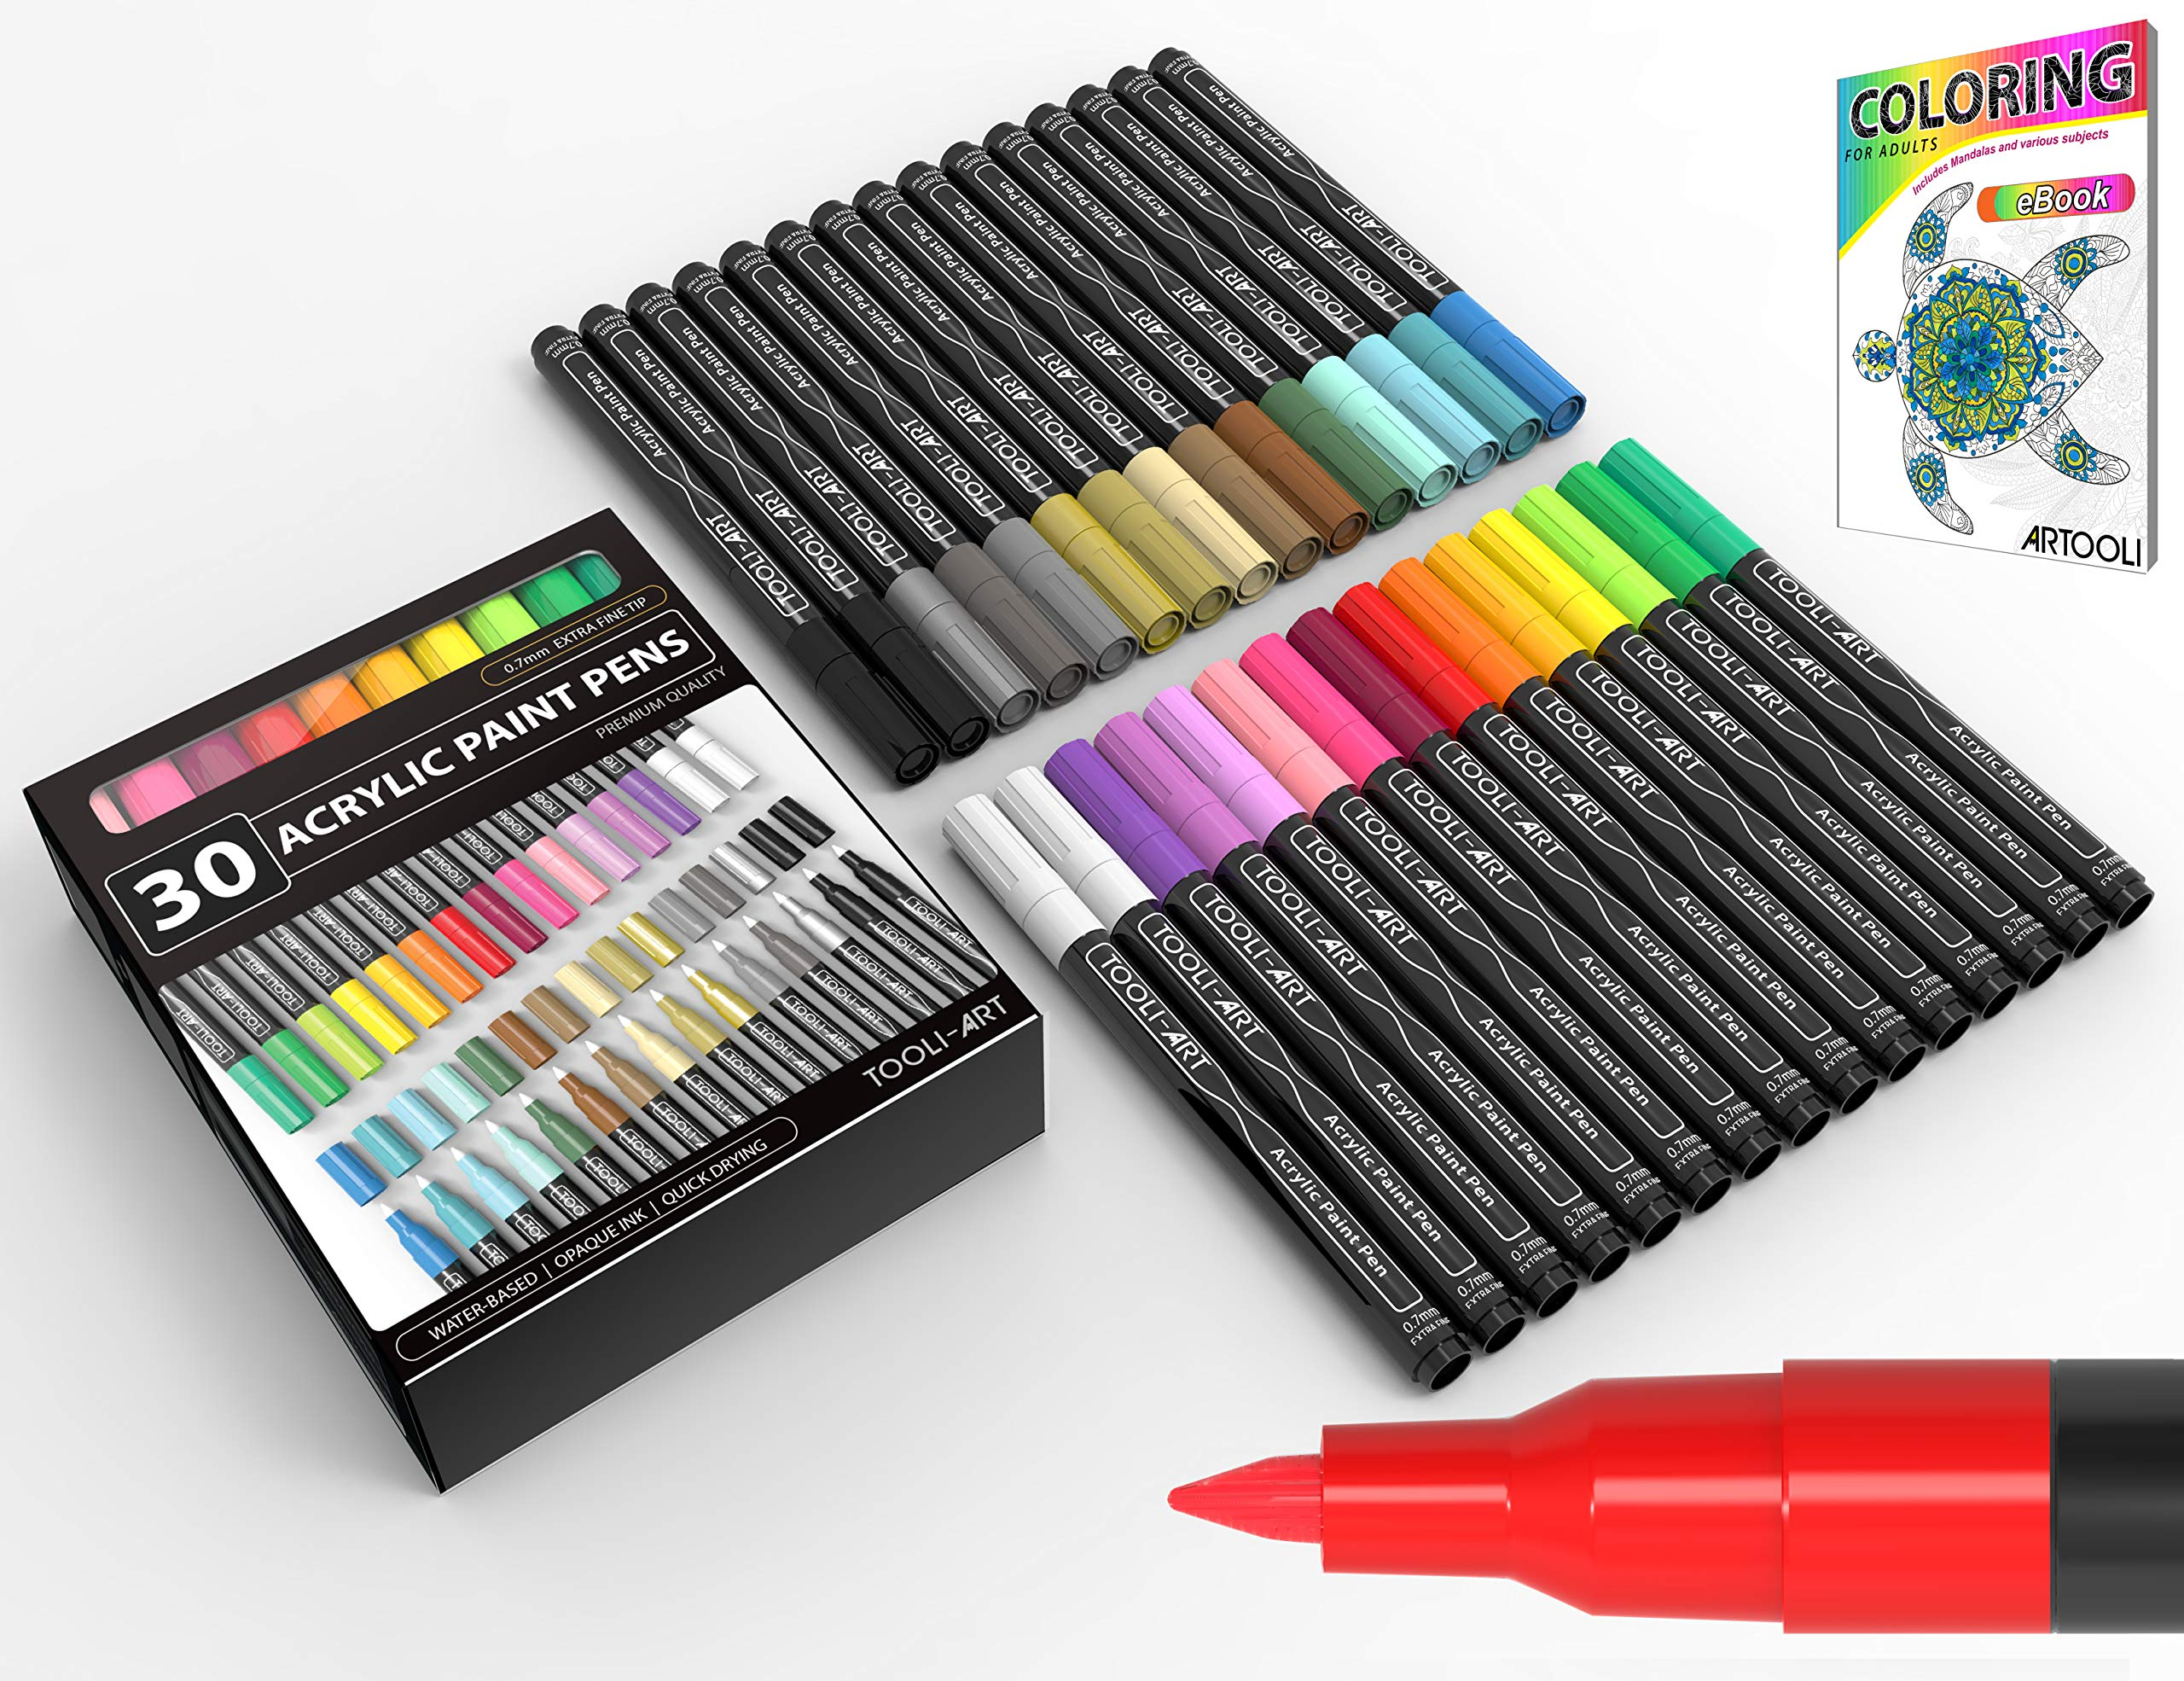 Acrylic Paint Pens 30 Assorted Markers Set 0.7mm Extra Fine Tip for Rock, Glass, Mugs, Porcelain, Wood, Metal, Fabric, Canvas, DIY Projects, Detailing. Non Toxic, Waterbased, Quick Drying. by TOOLI-ART